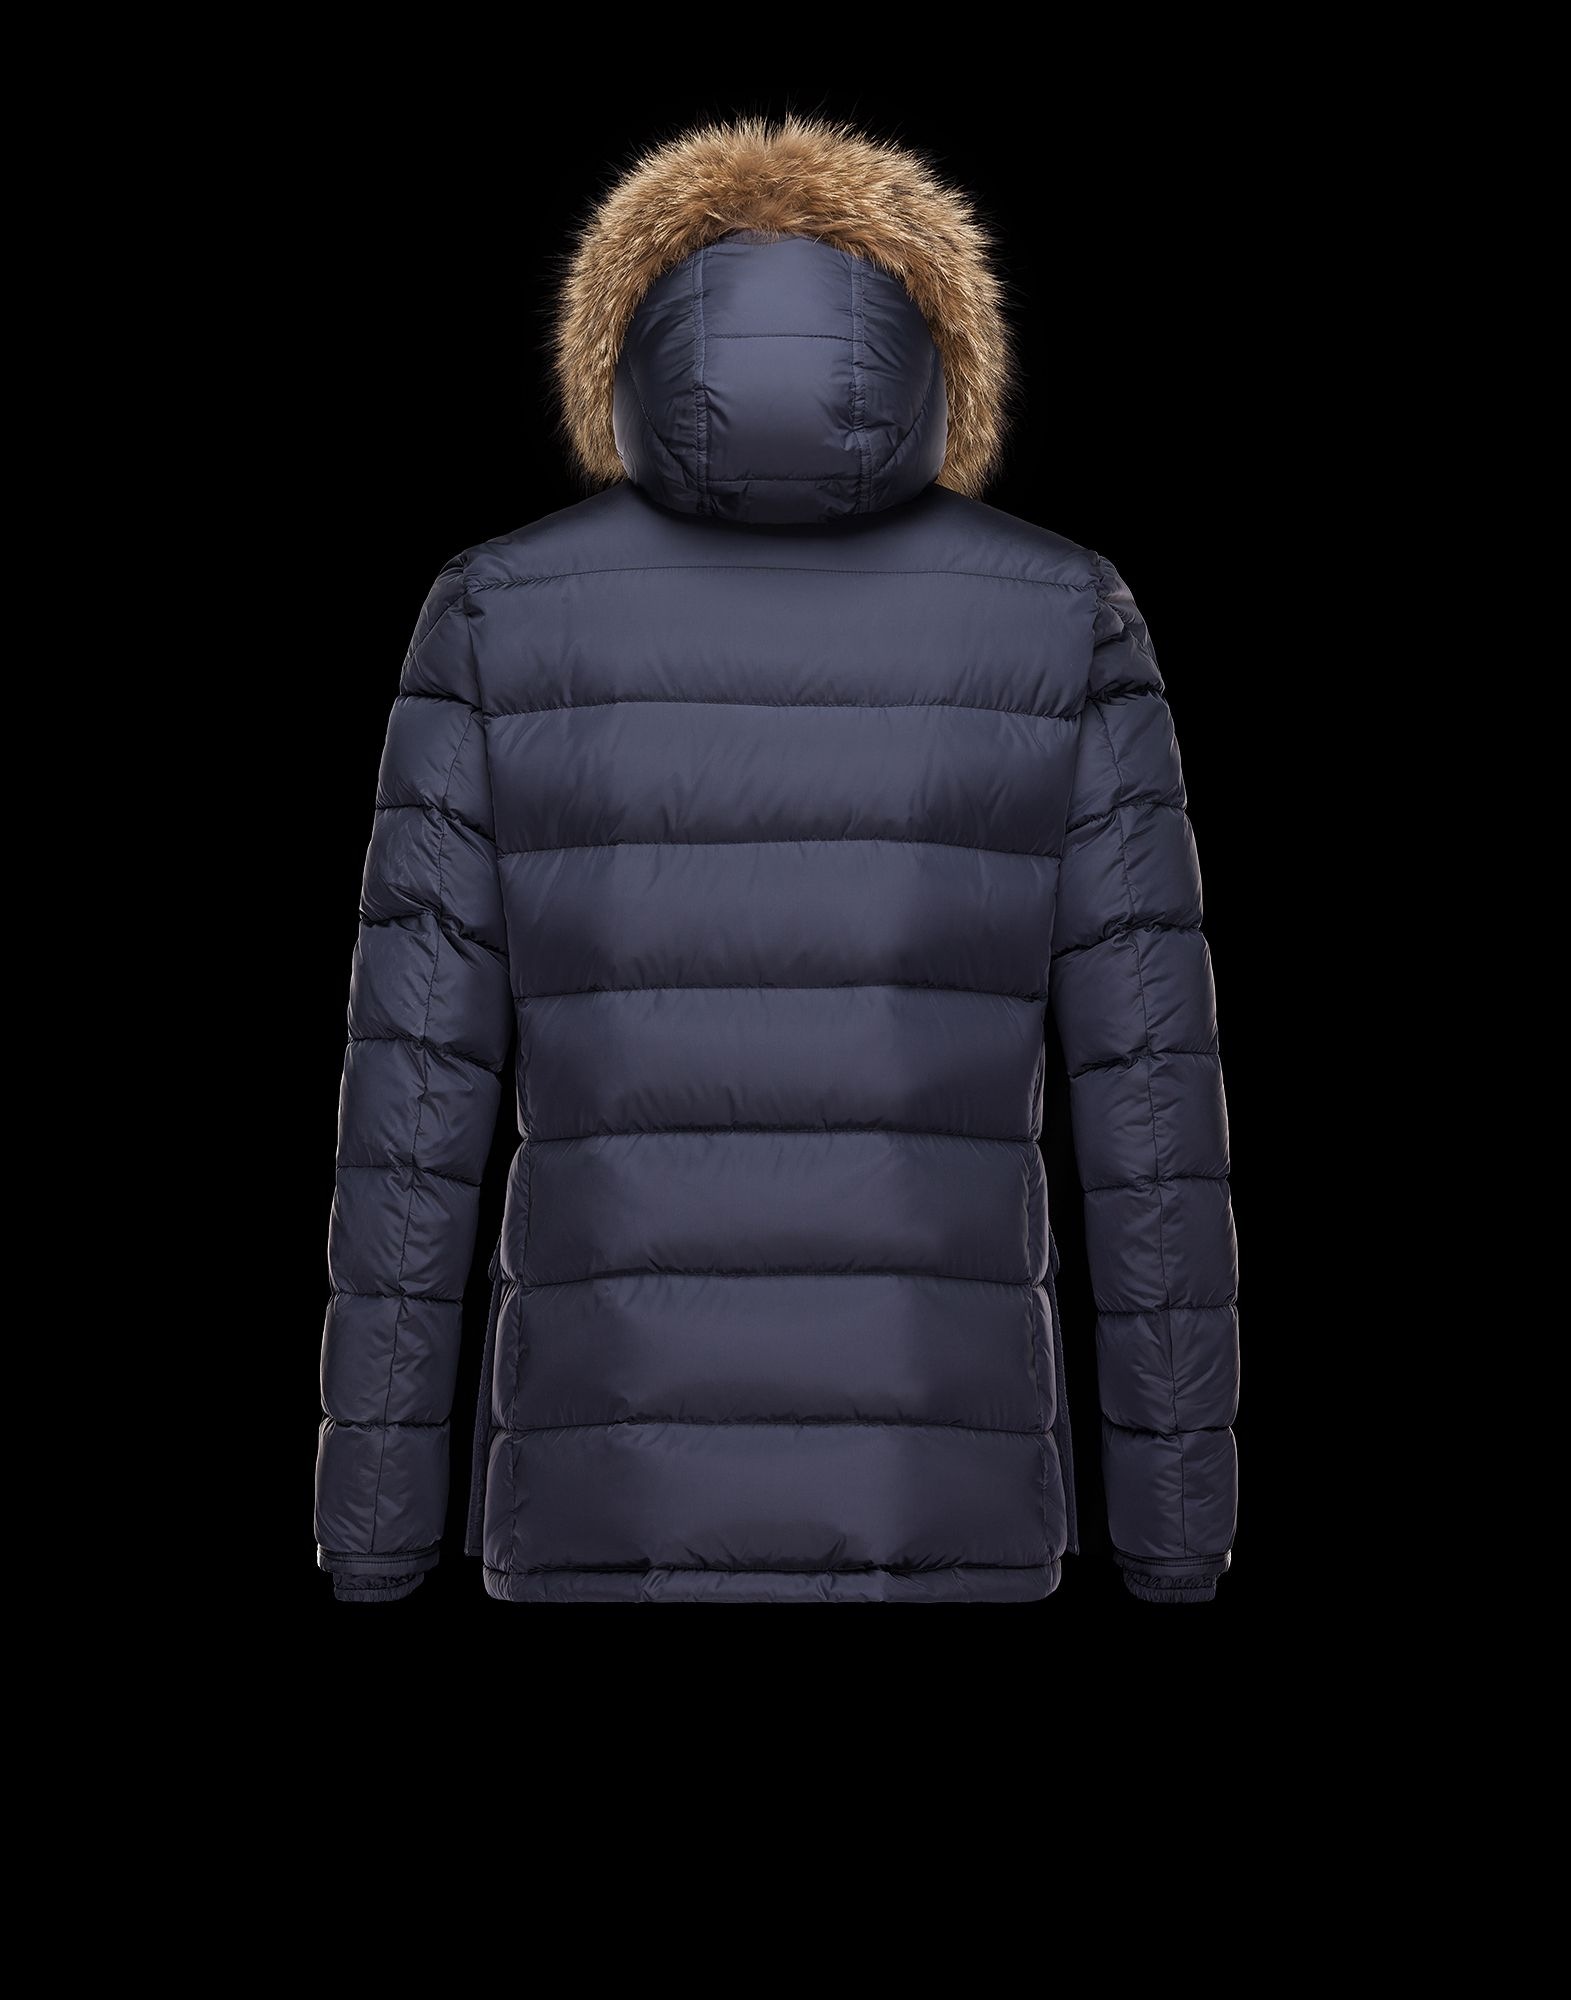 moncler quality review